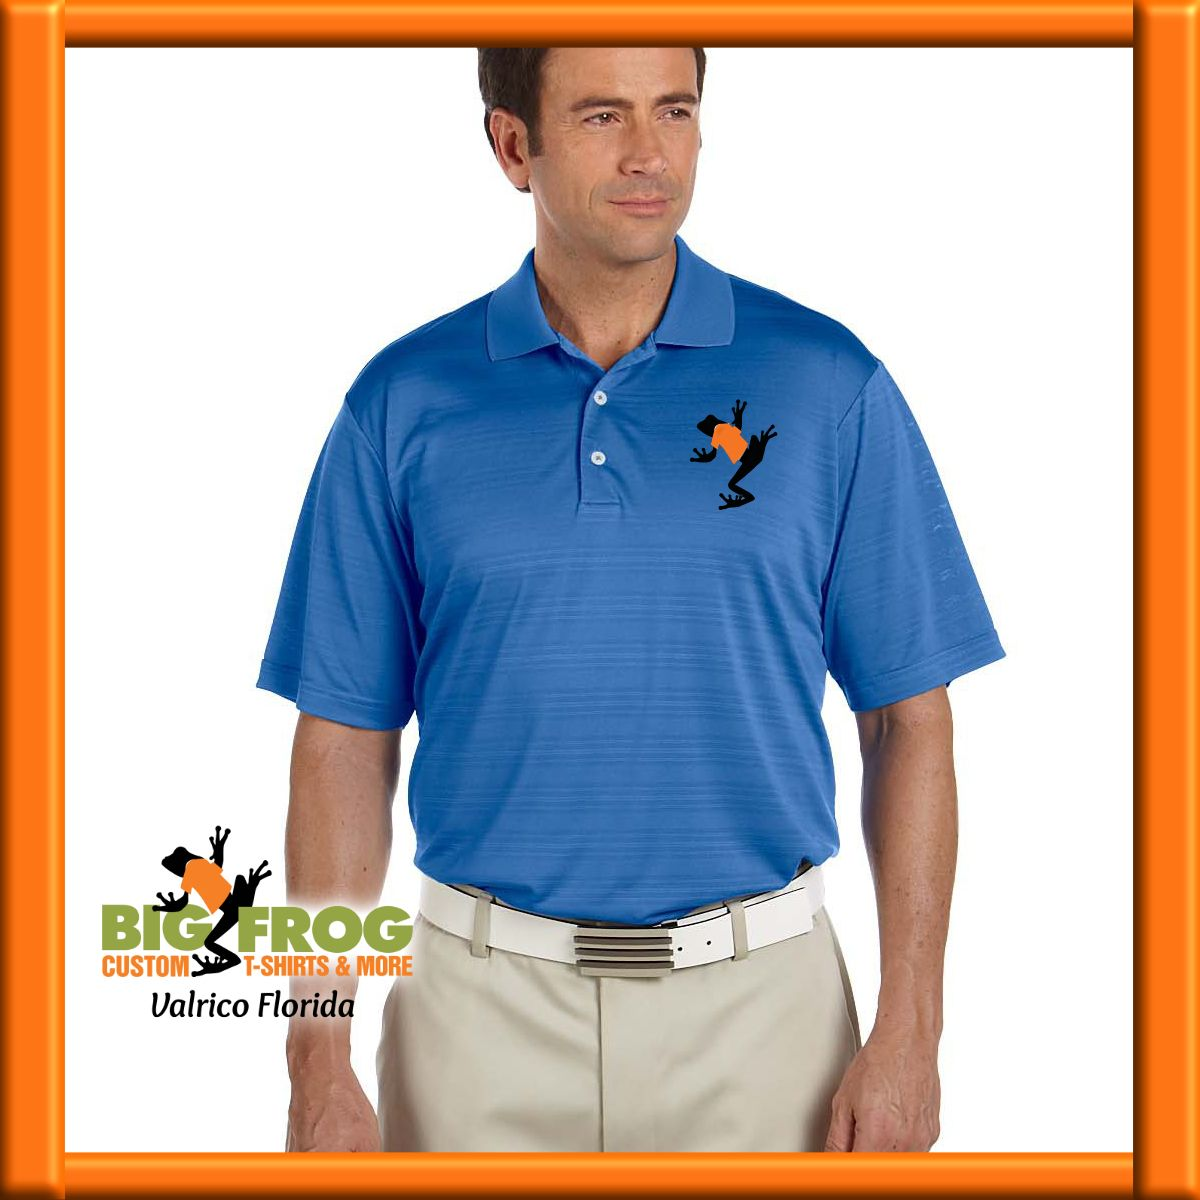 Custom Corporate Apparel Is Available At Big Frog Custom T Shirts